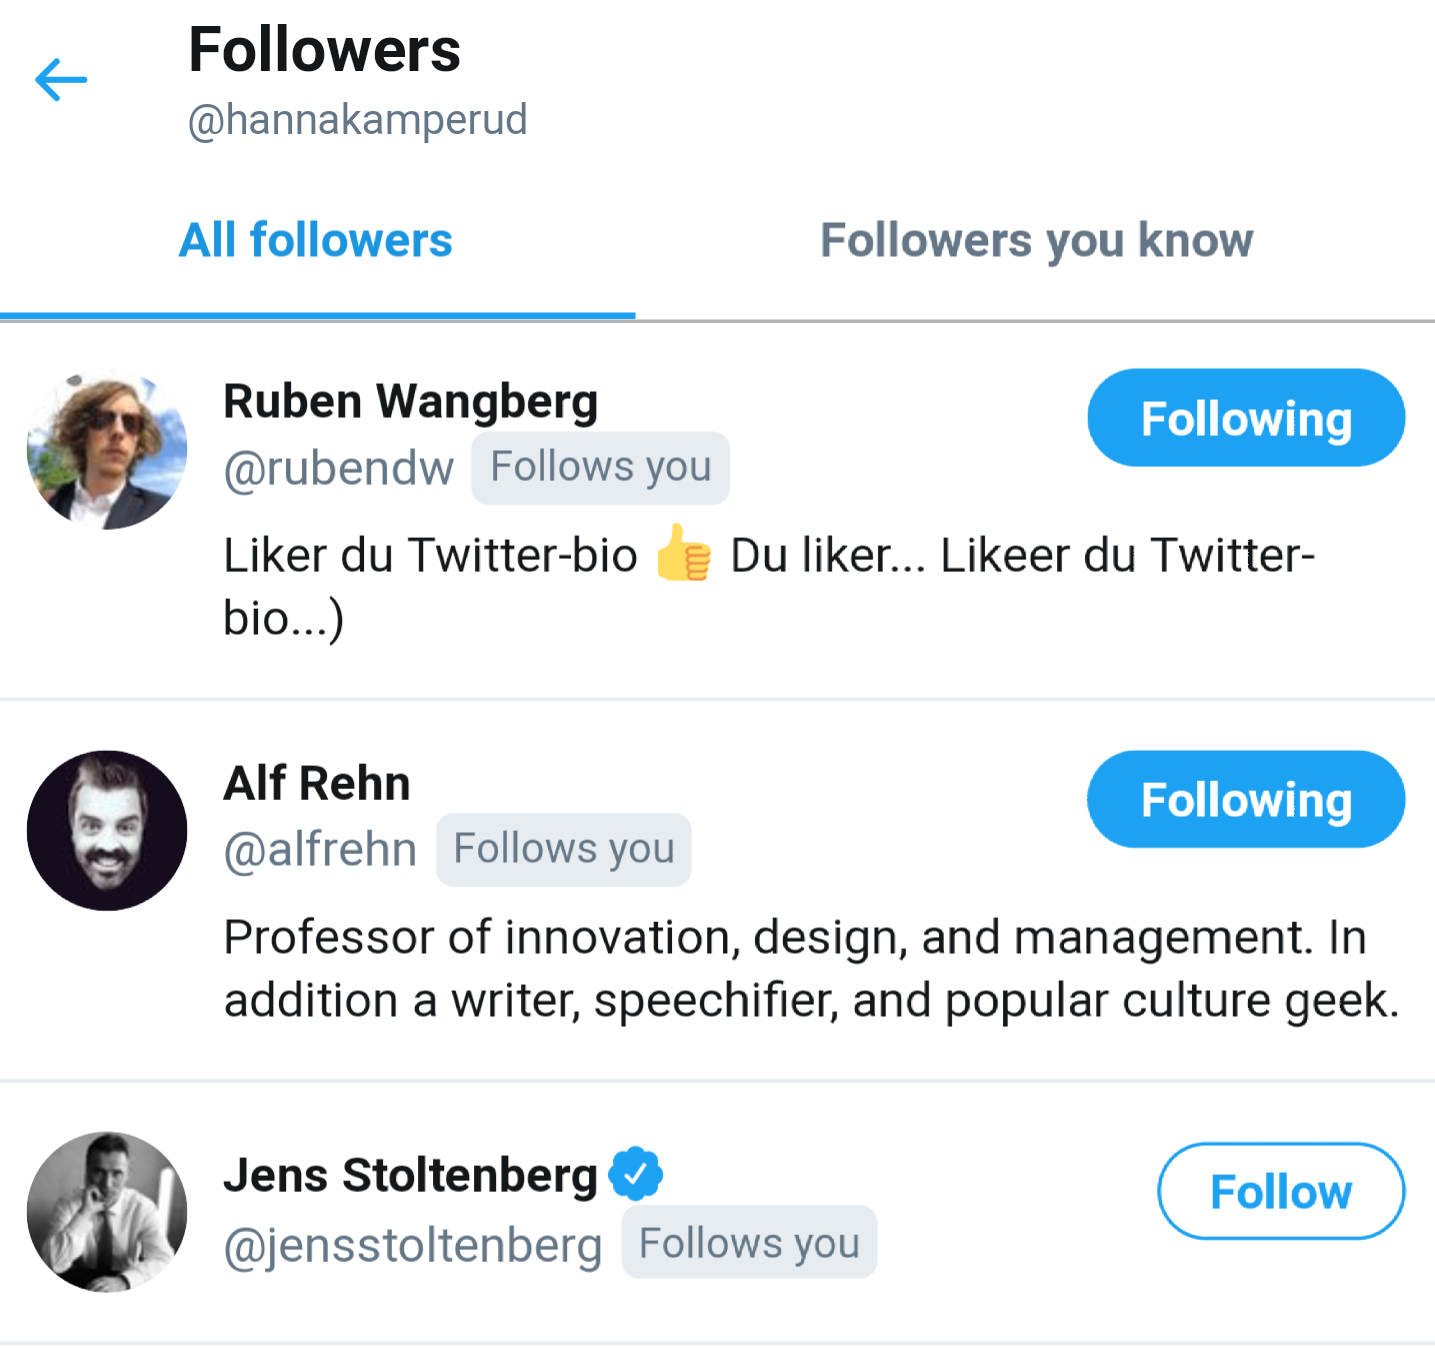 A screenshot from twitter of three followers. Ruben Wangberg, Alf Rehn and Jens Stoltenberg